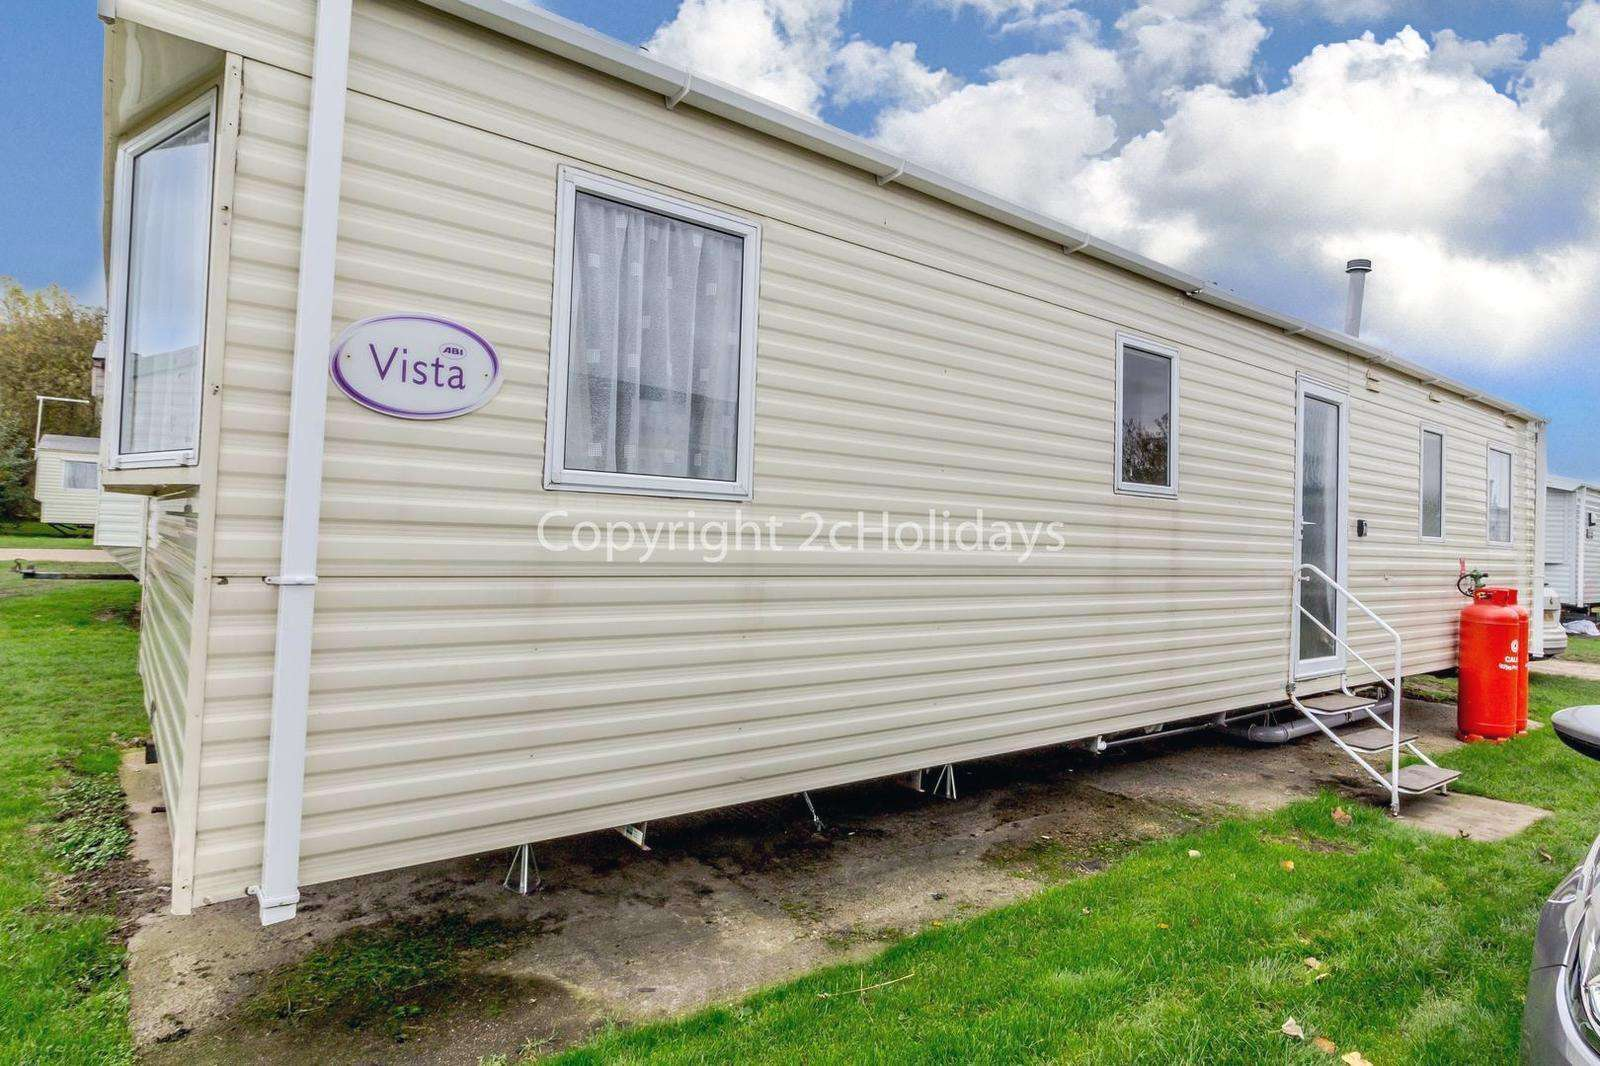 Great caravan sited on a brilliant family park! - property